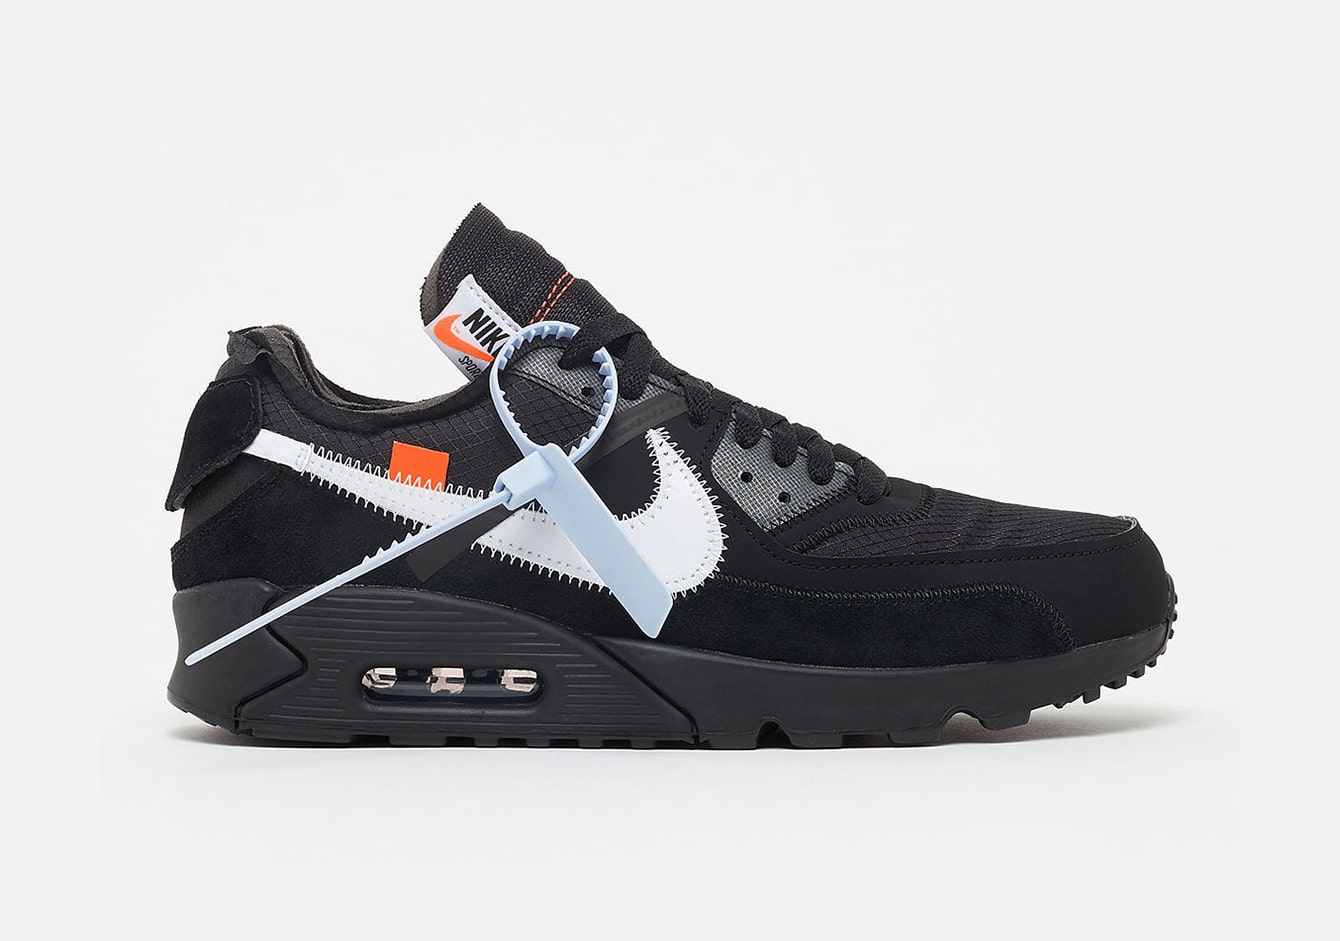 The OFF-WHITE x Nike Air Max 90 Release